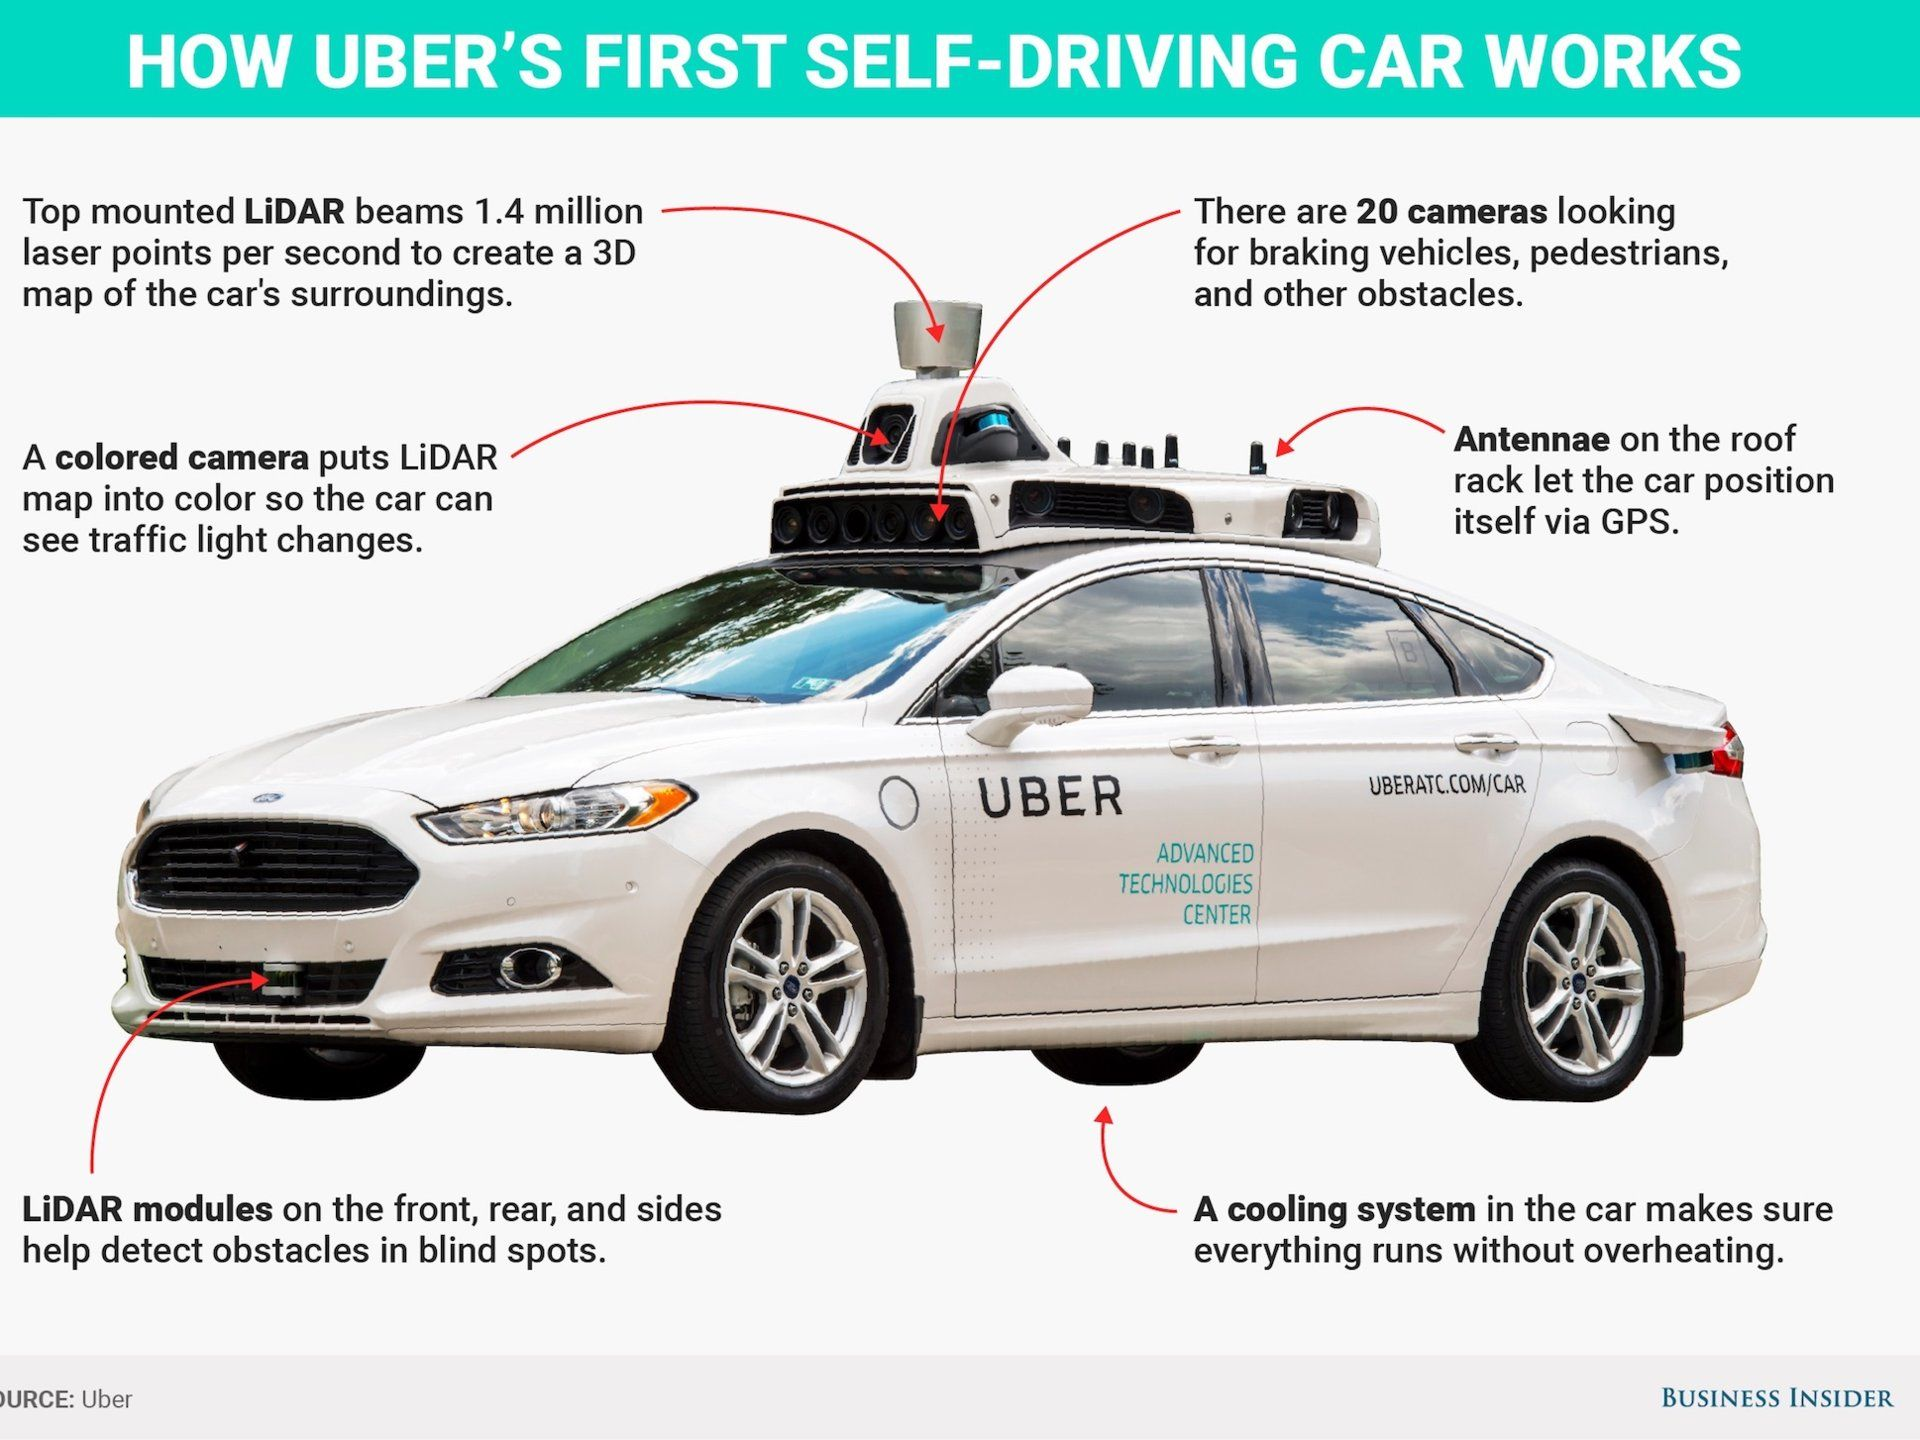 A self-driving Uber struck and killed a woman — here's a